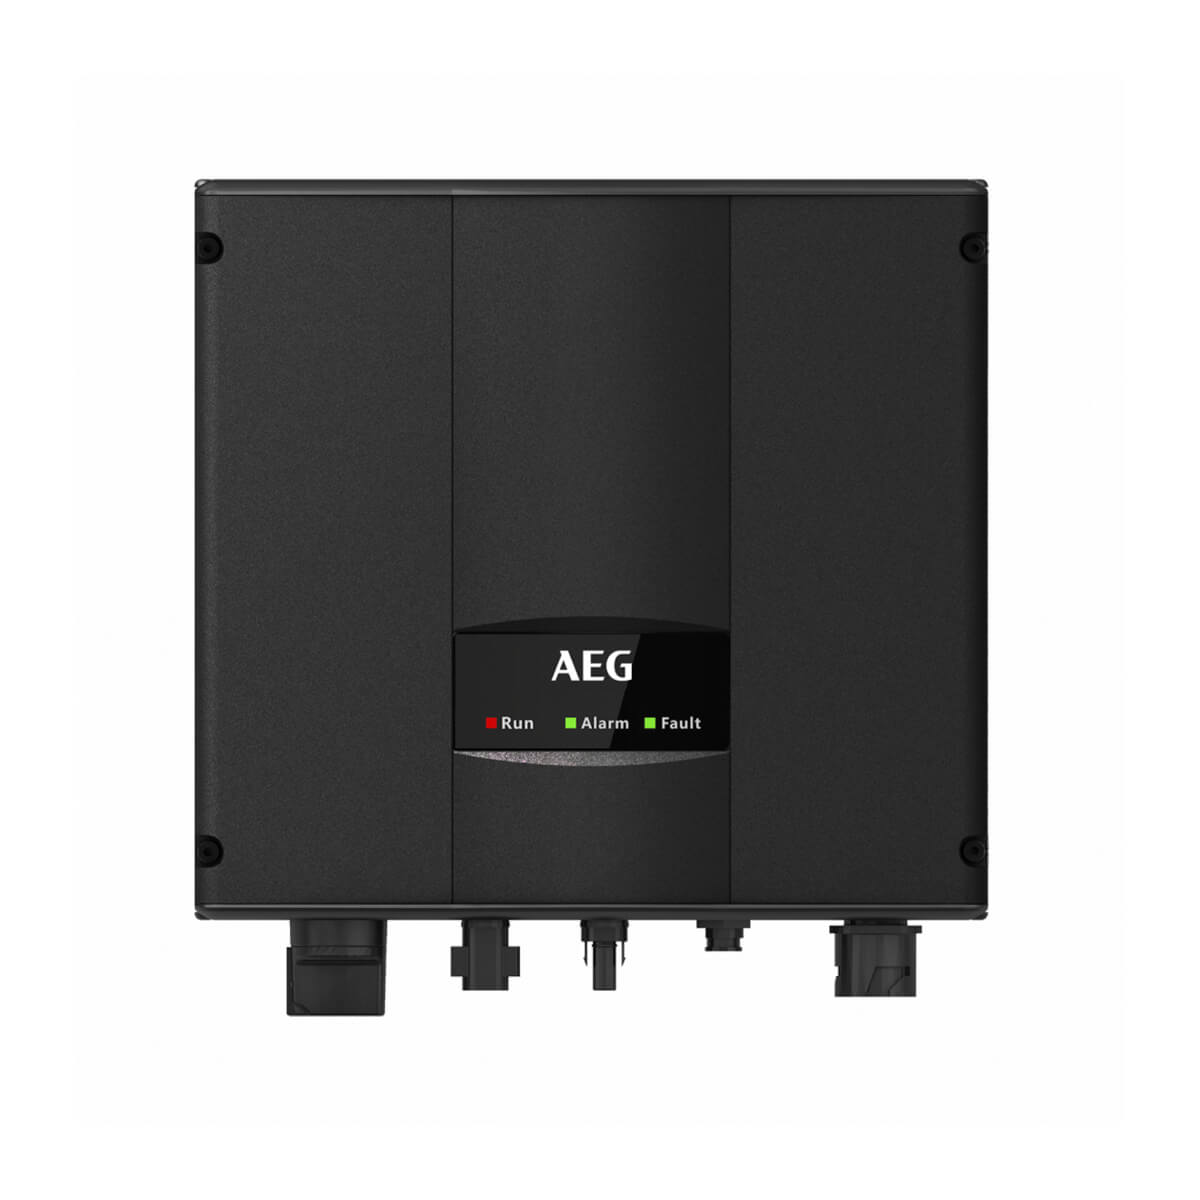 aeg 4.6kW inverter, aeg as-ir01 4.6kW inverter, aeg as-ir01-4600 inverter, aeg as-ir01-4600, aeg as-ir01 4.6kW